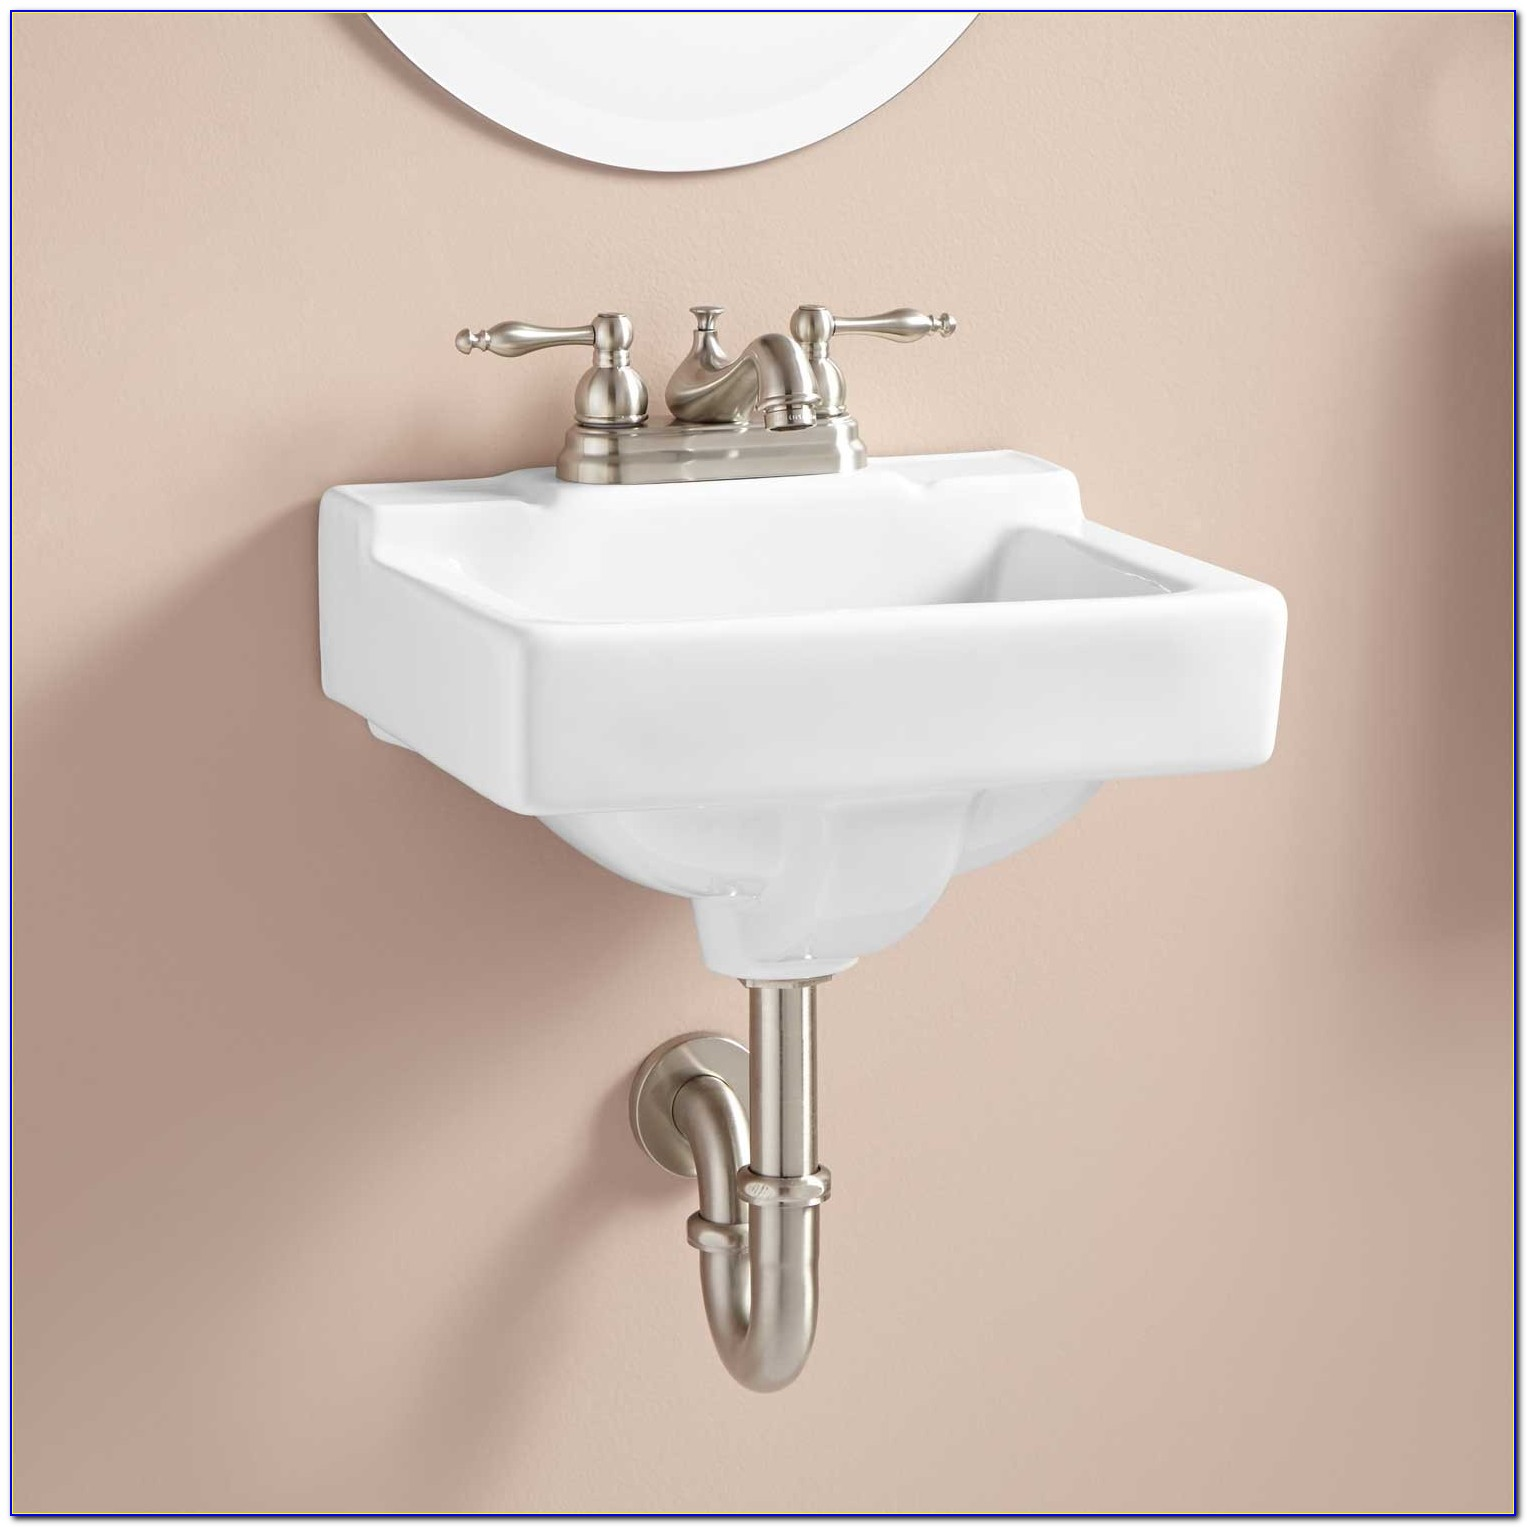 Wall Mounted Commercial Sink Faucet